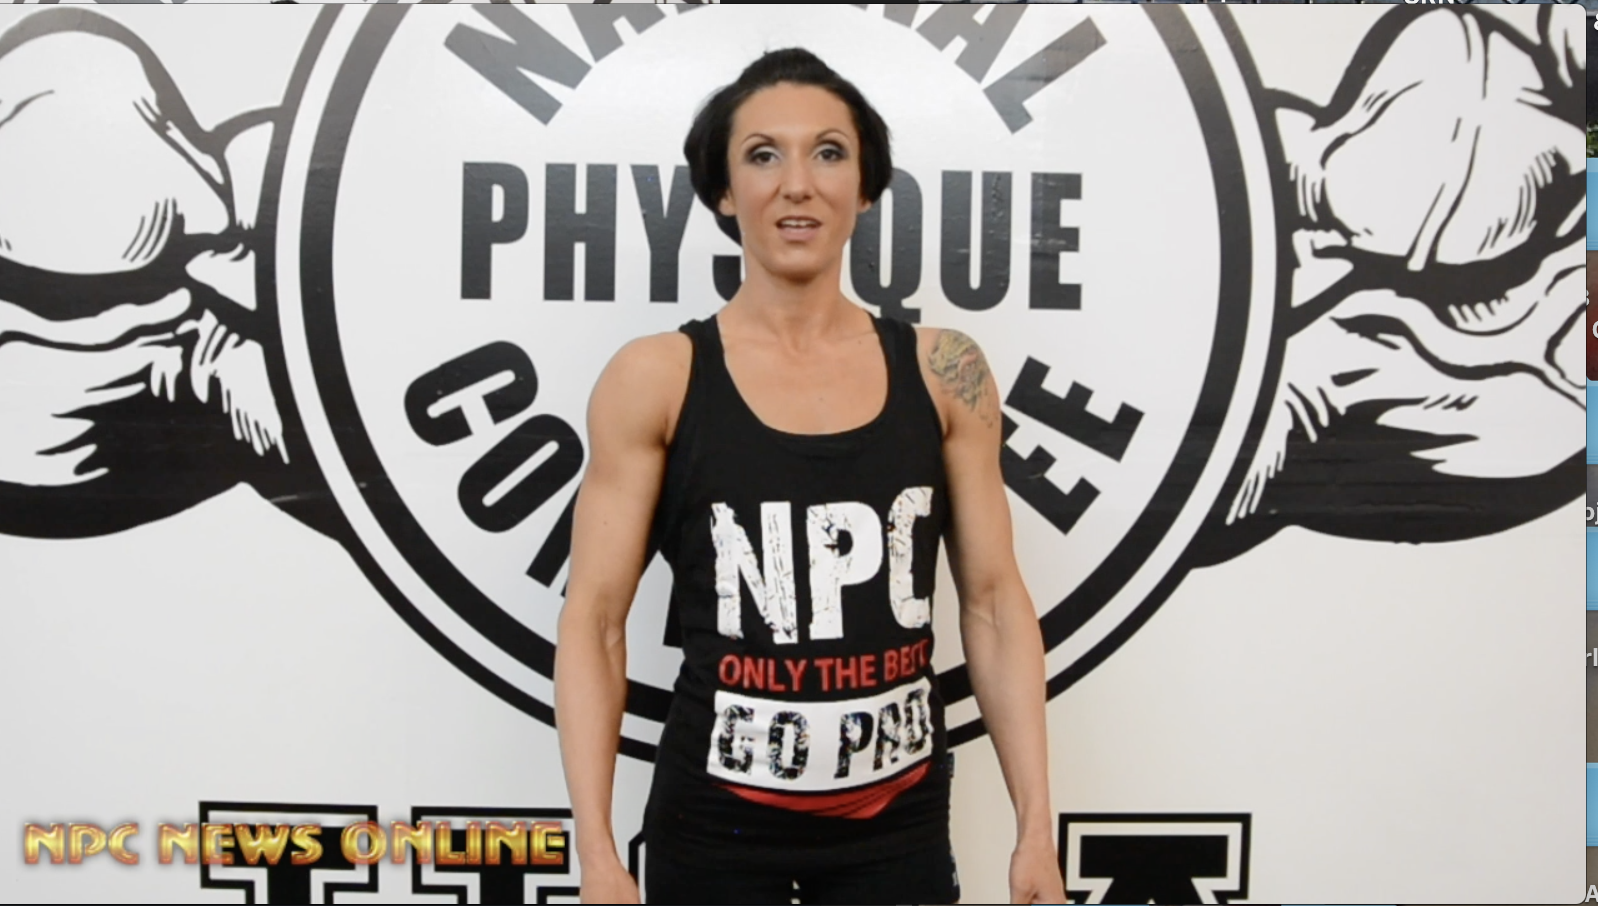 Road To The 2018 NPC Pittsburgh Championships: FIGURE Competitor SARA MOUTON